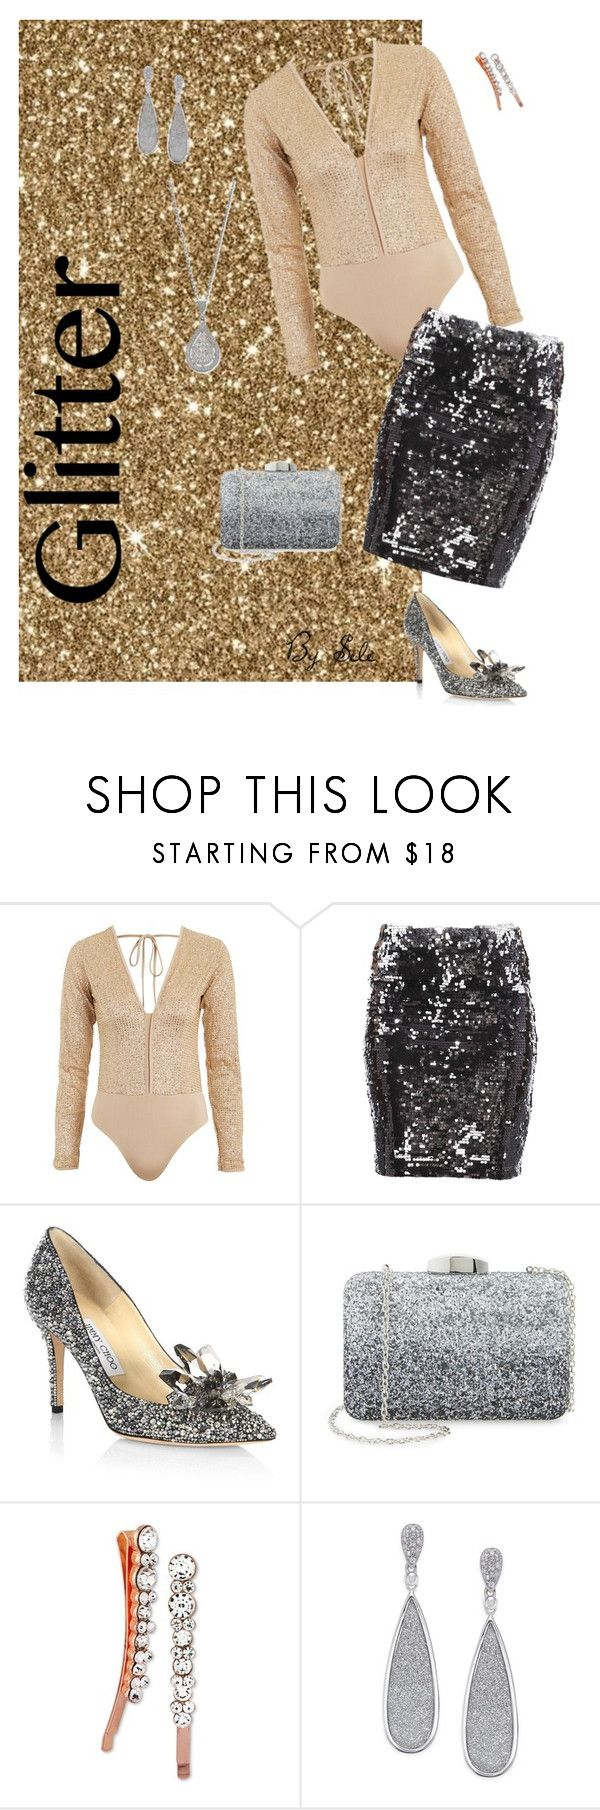 """""""All that glitters! - That's Party"""" by selene-cinzia ❤ liked on Polyvore featuring WYLDR, Stylista Select, Jimmy Choo, Nordstrom and Say Yes to the Prom"""